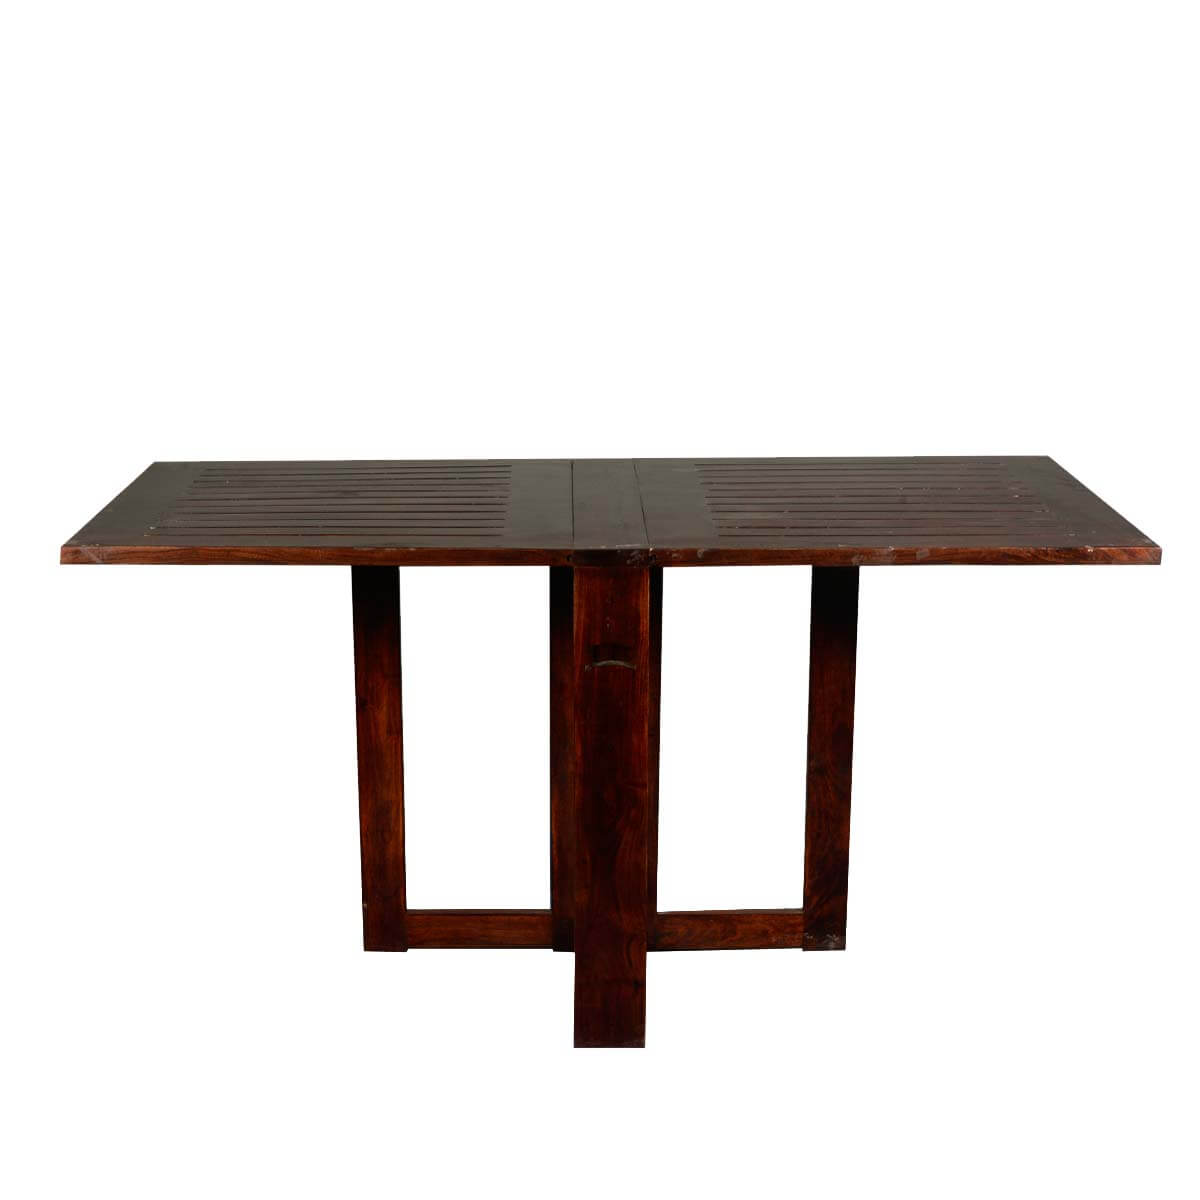 Incredible solid wood 4 square pedestal folding dining room table - Foldable dining table ...